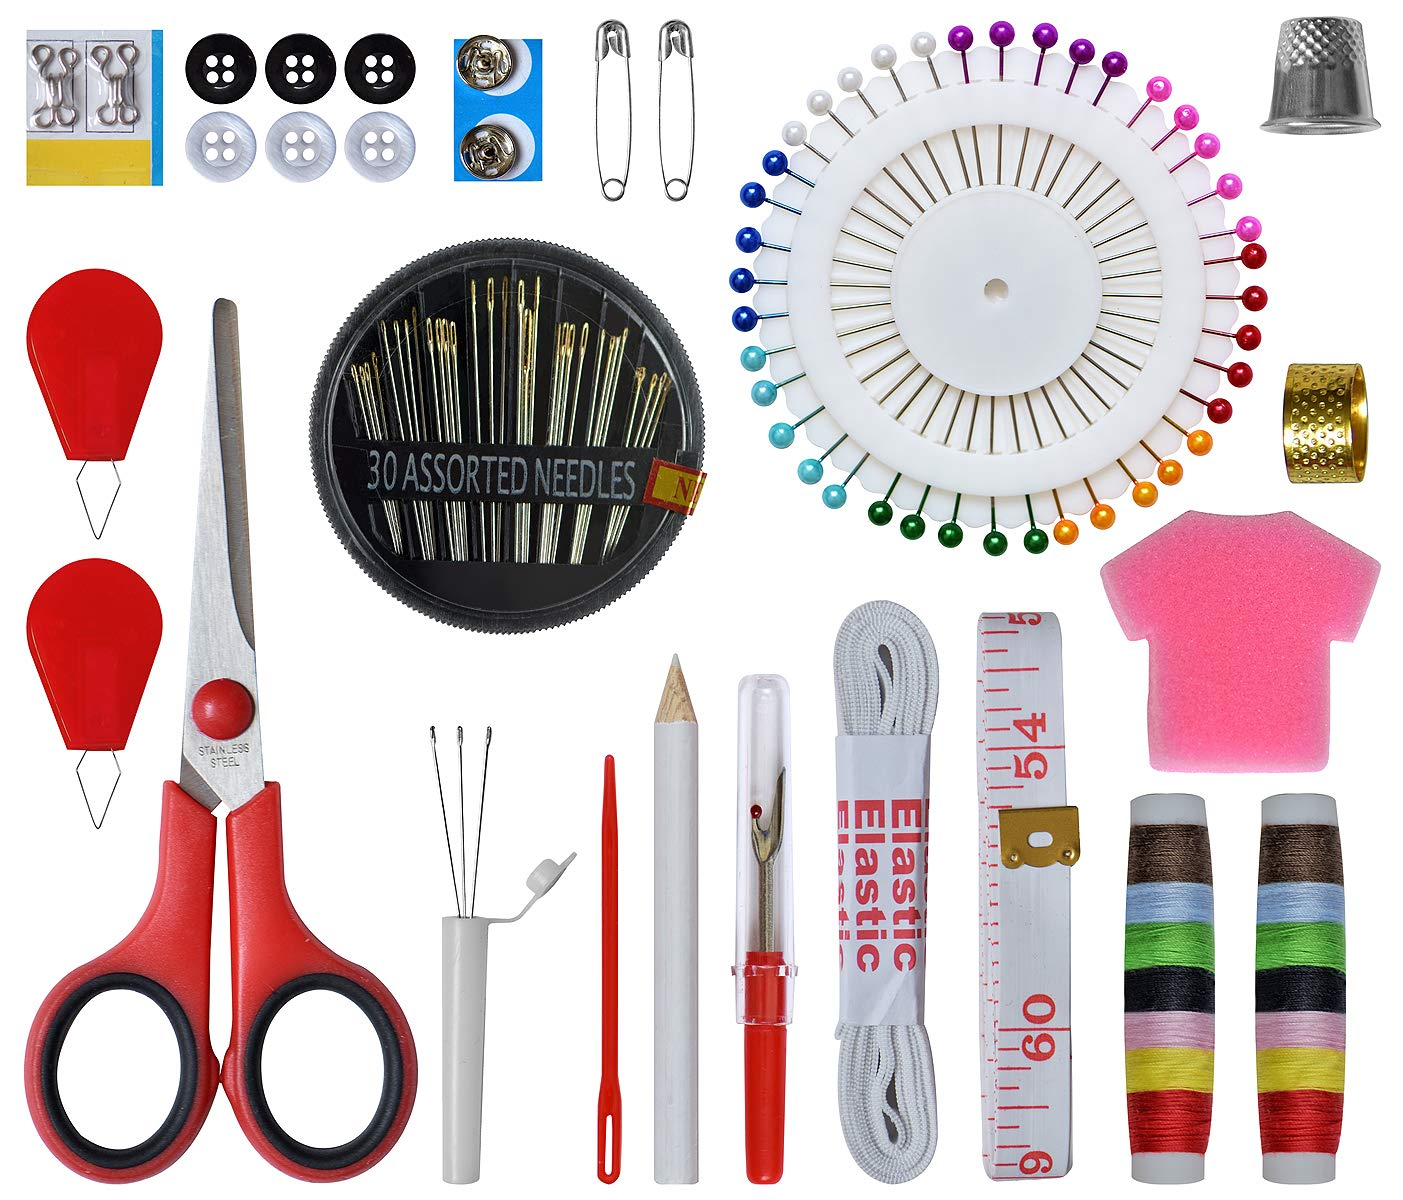 Sewing KIT-Over 206 DIY Premium Sewing Supplies Accessories Portable XXL Sewing Kit 48 Spools of Sewing Thread,Extra Sewing Needles,Tool Kits for Beginner Traveller and Emergency Clothing Fixes